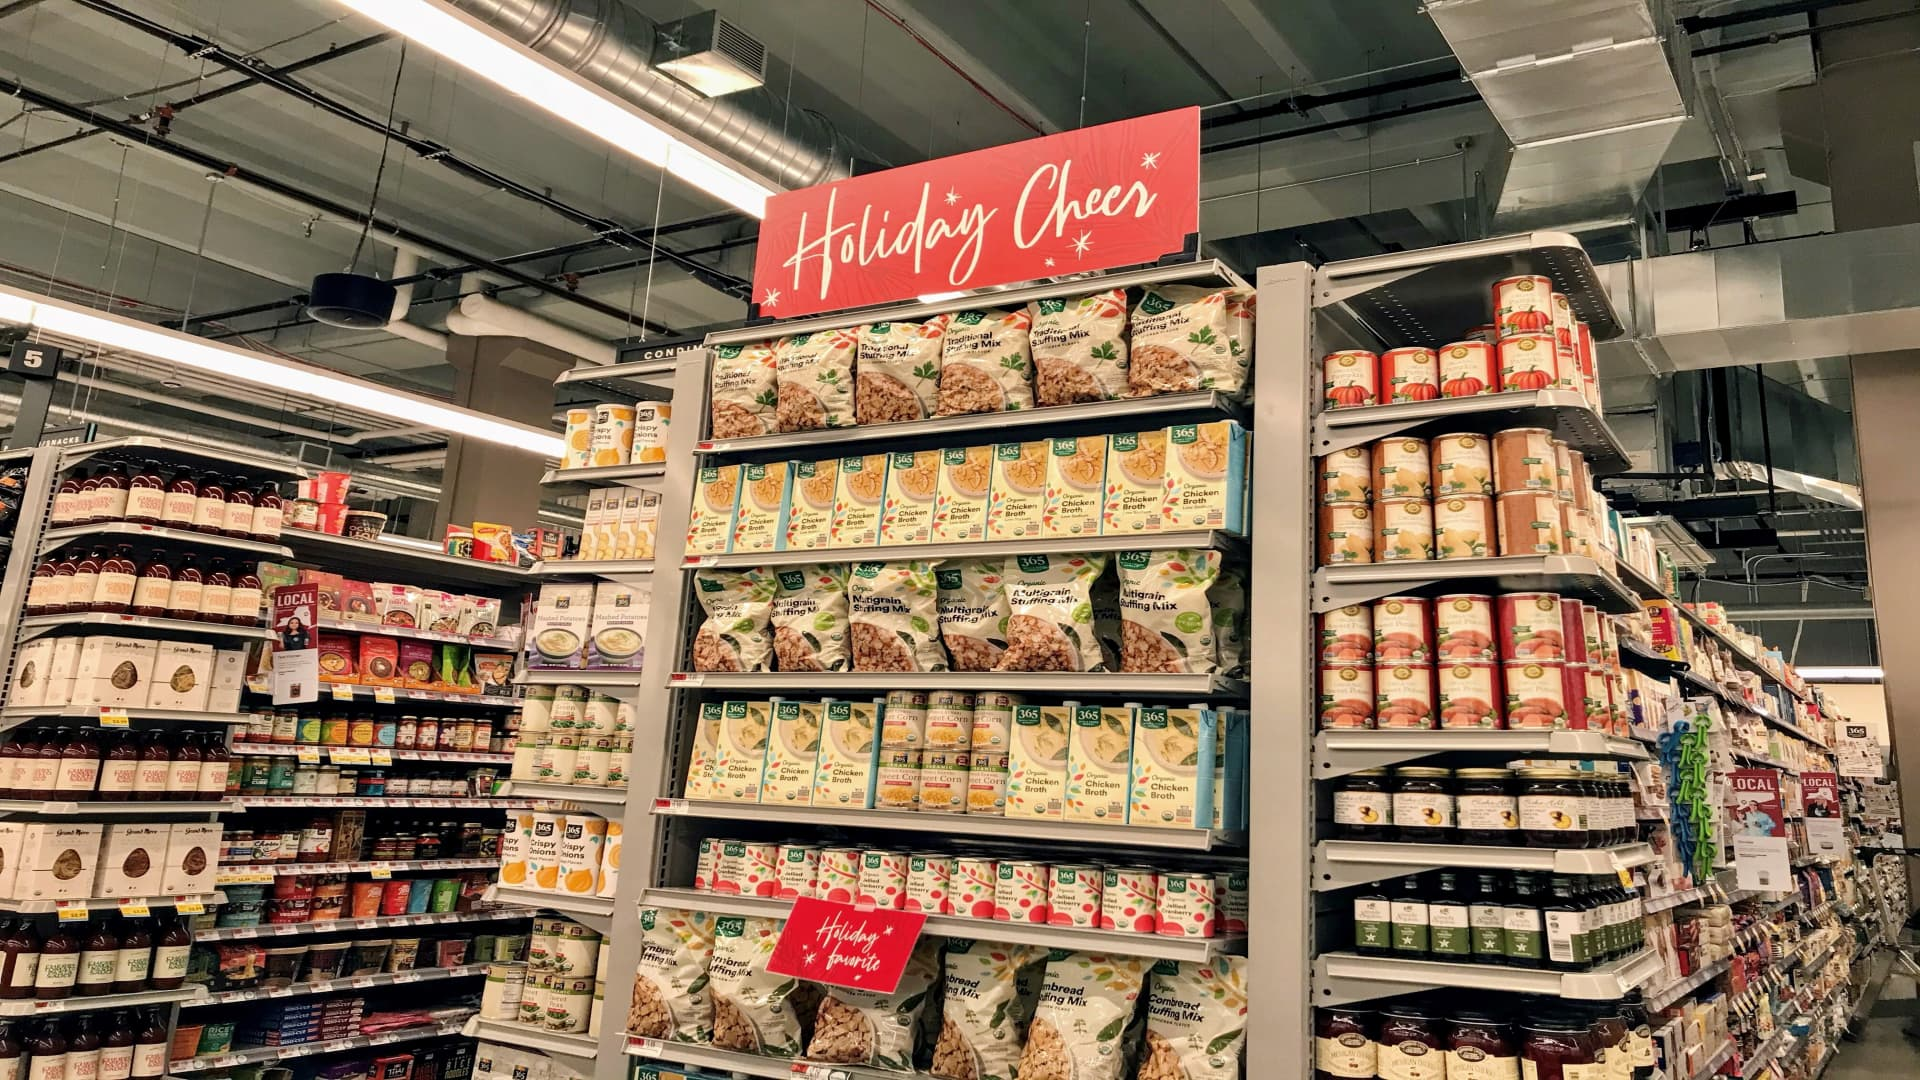 A view of the specialty holiday items available at the Whole Foods in Weehawken, New Jersey.